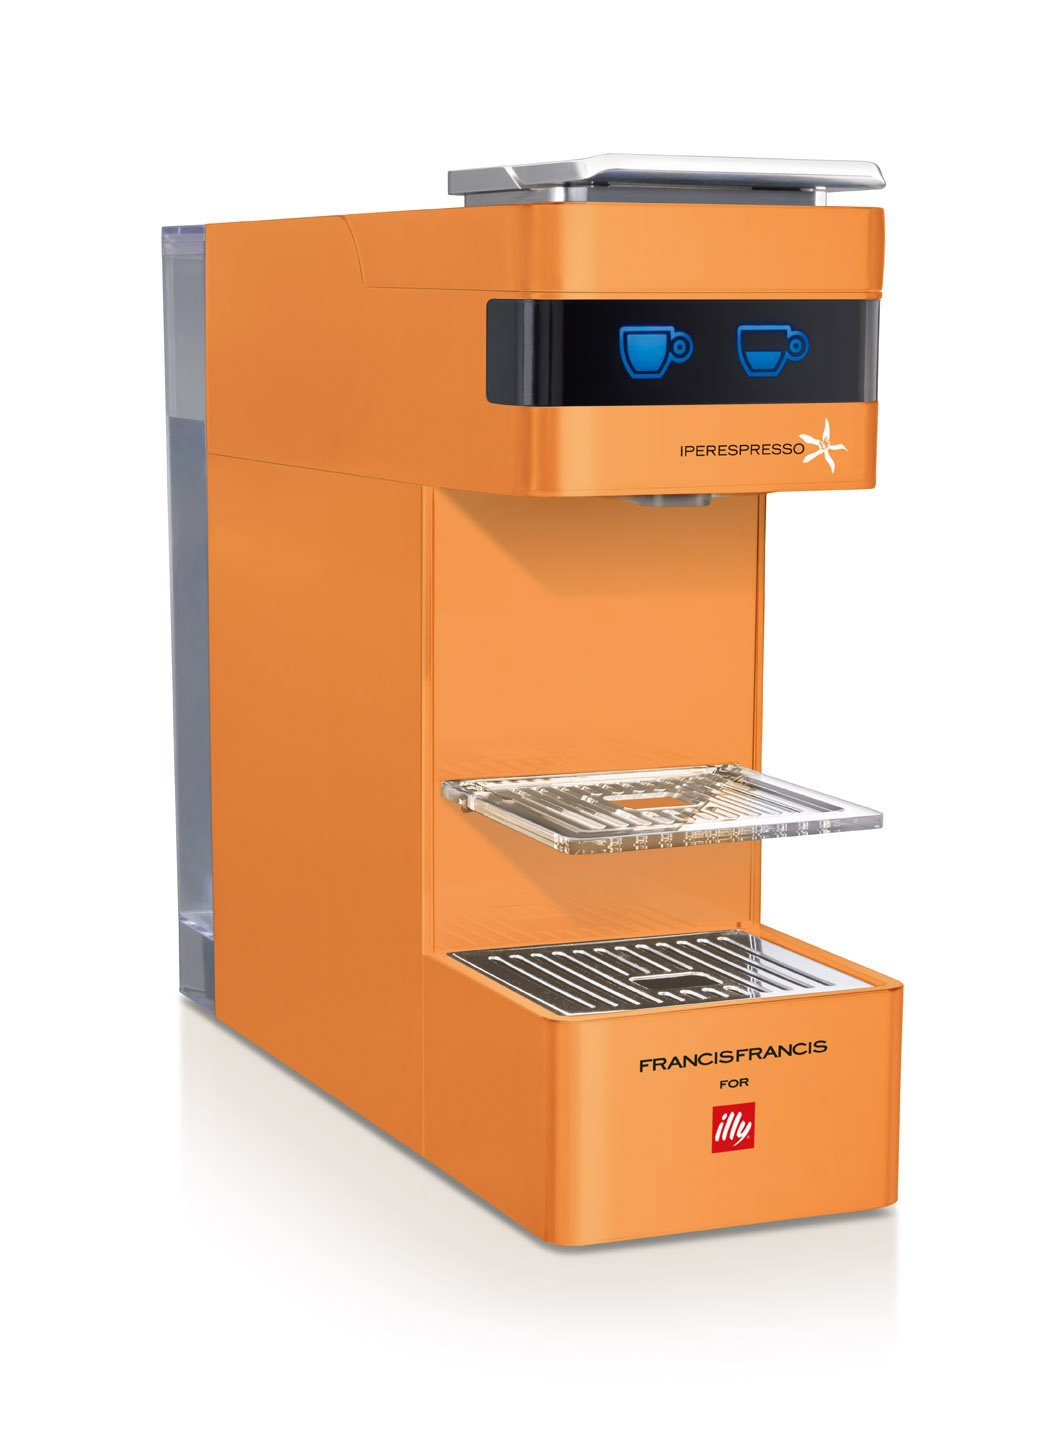 illy Espresso Machine ''FrancisFrancis! Y3'' (Orange)【Japan Domestic Genuine Products】【Ships from Japan】